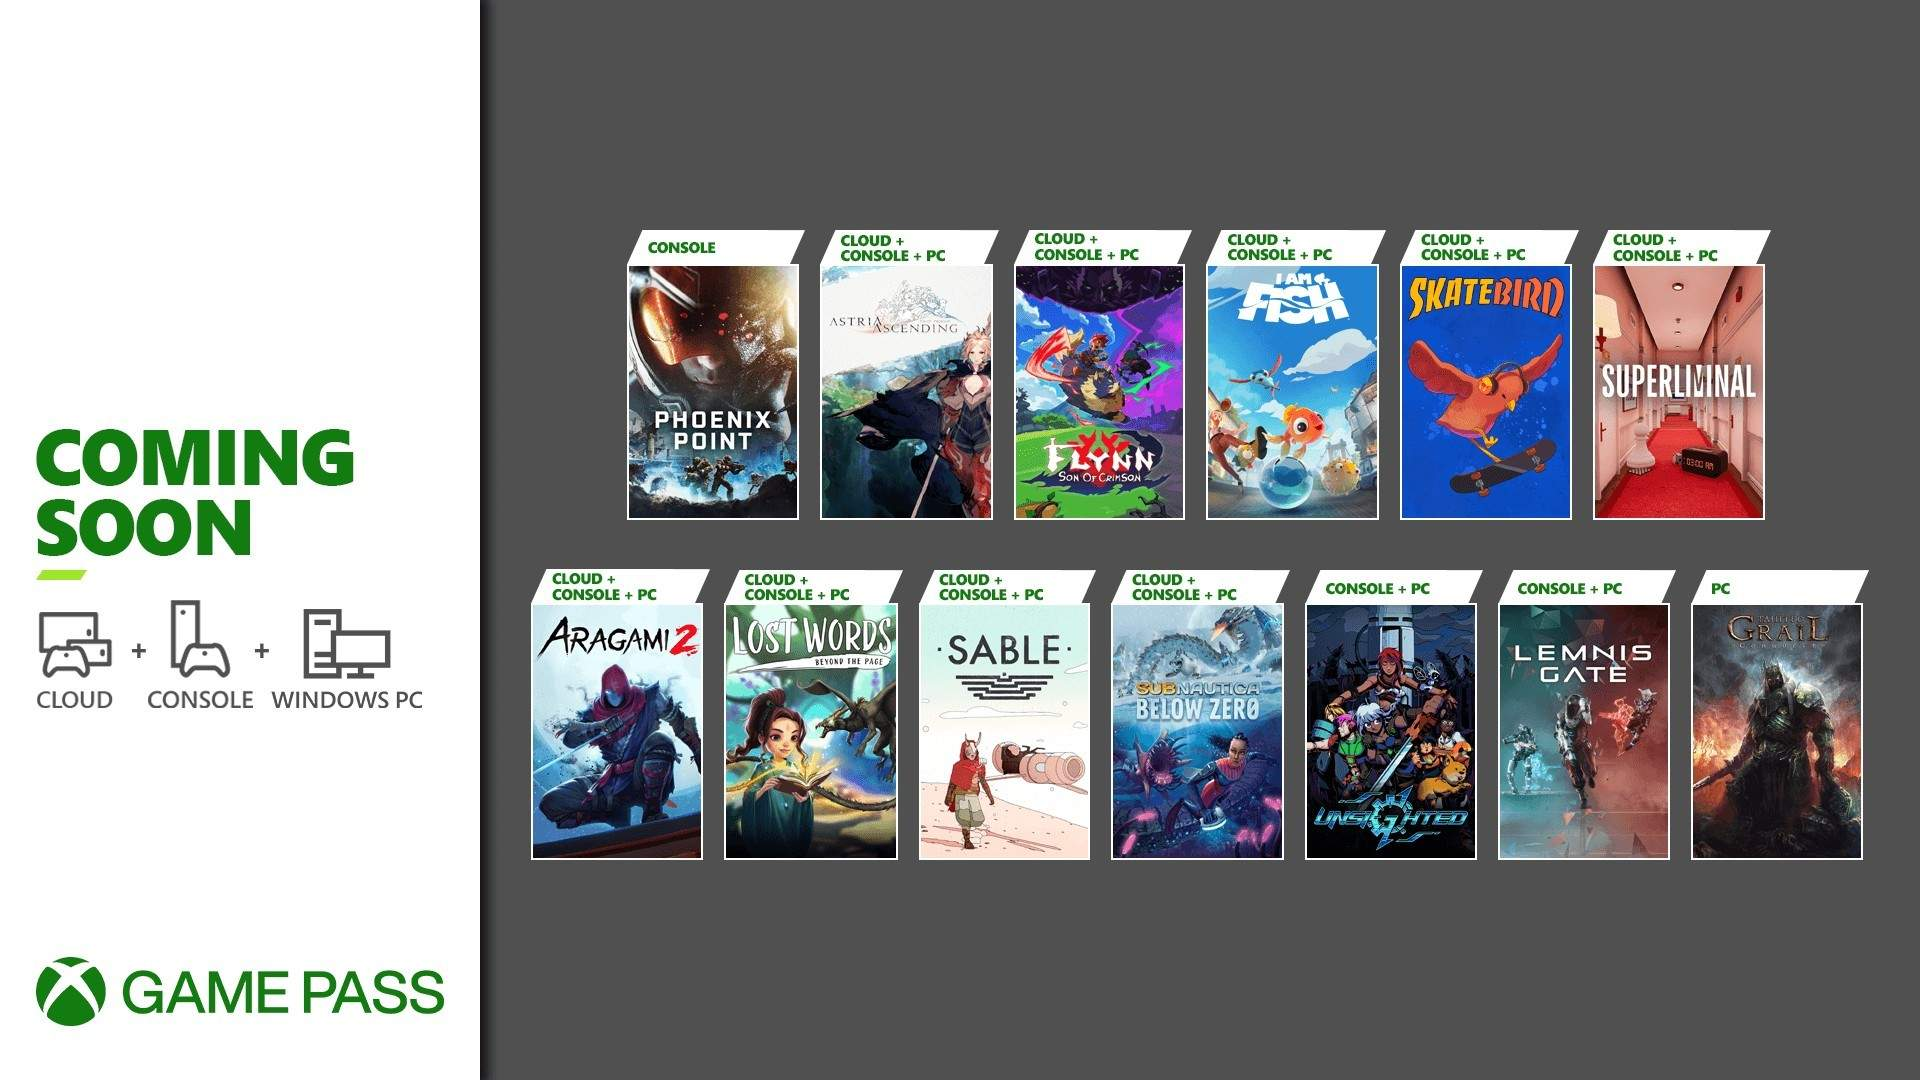 Xbox Game Pass adds Sable, Lemnis Gate, Aragami 2, and more in late September - Gematsu